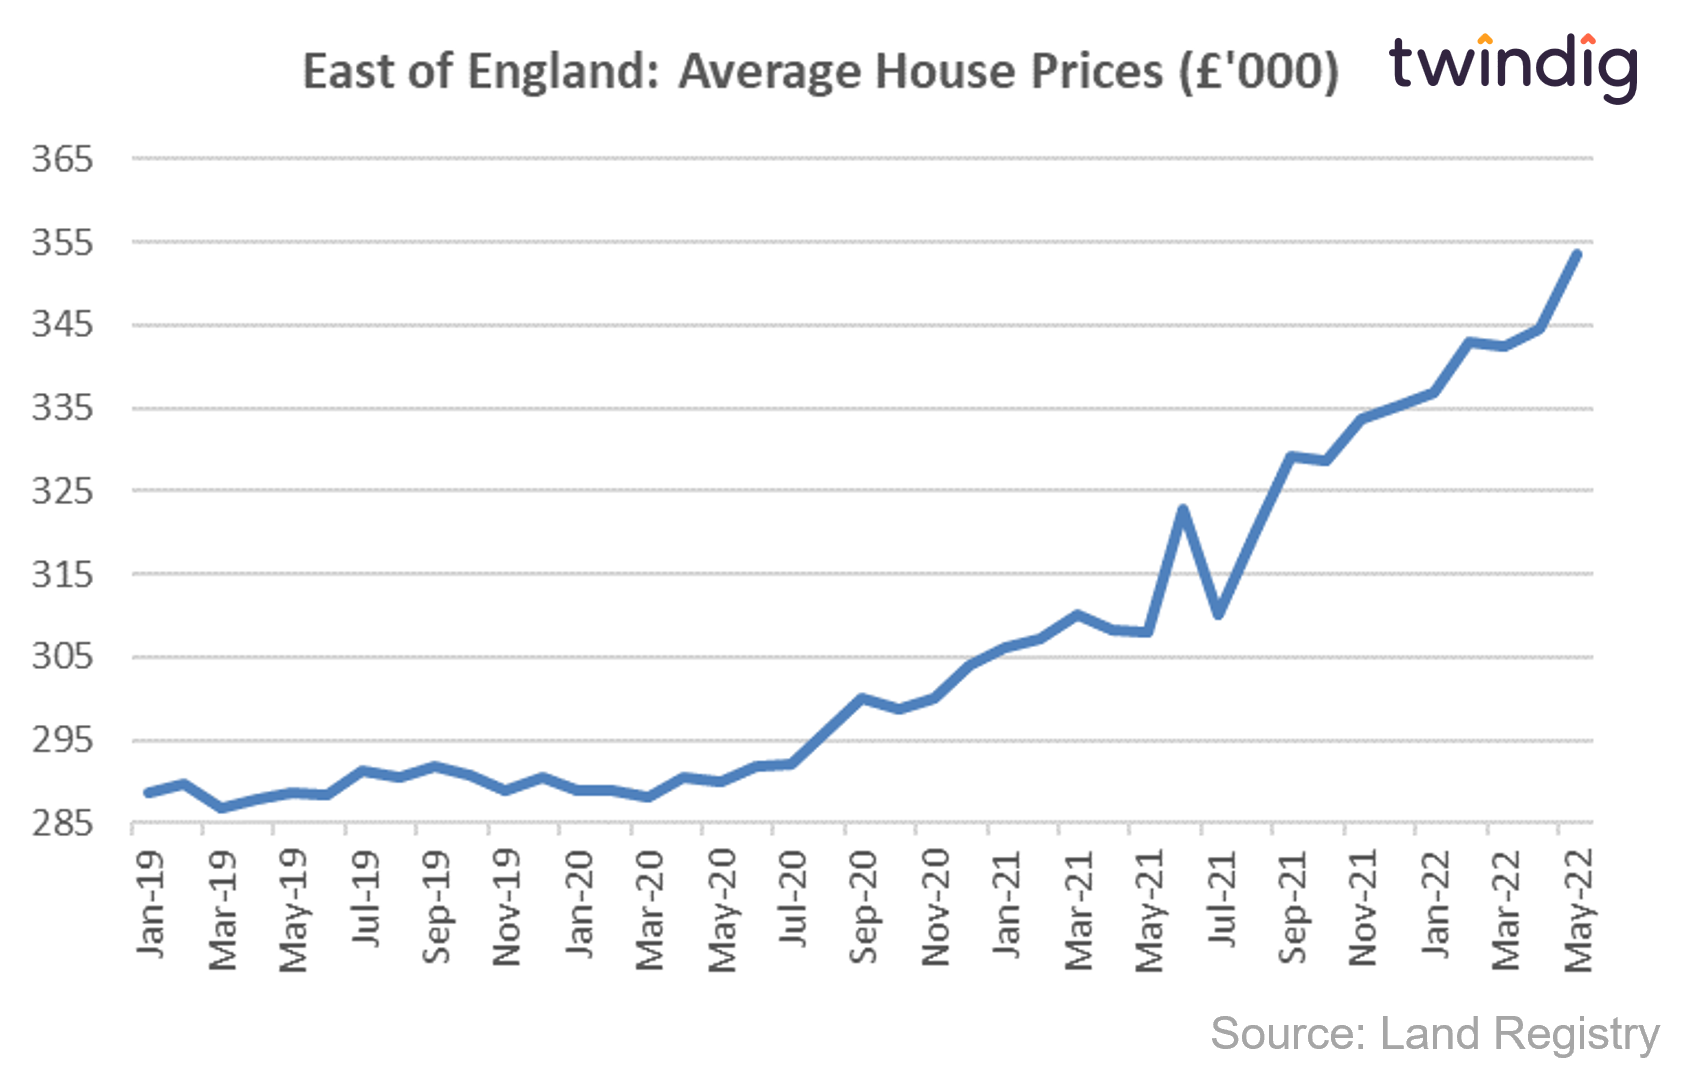 House price graph chart showing average house prices in the East of England